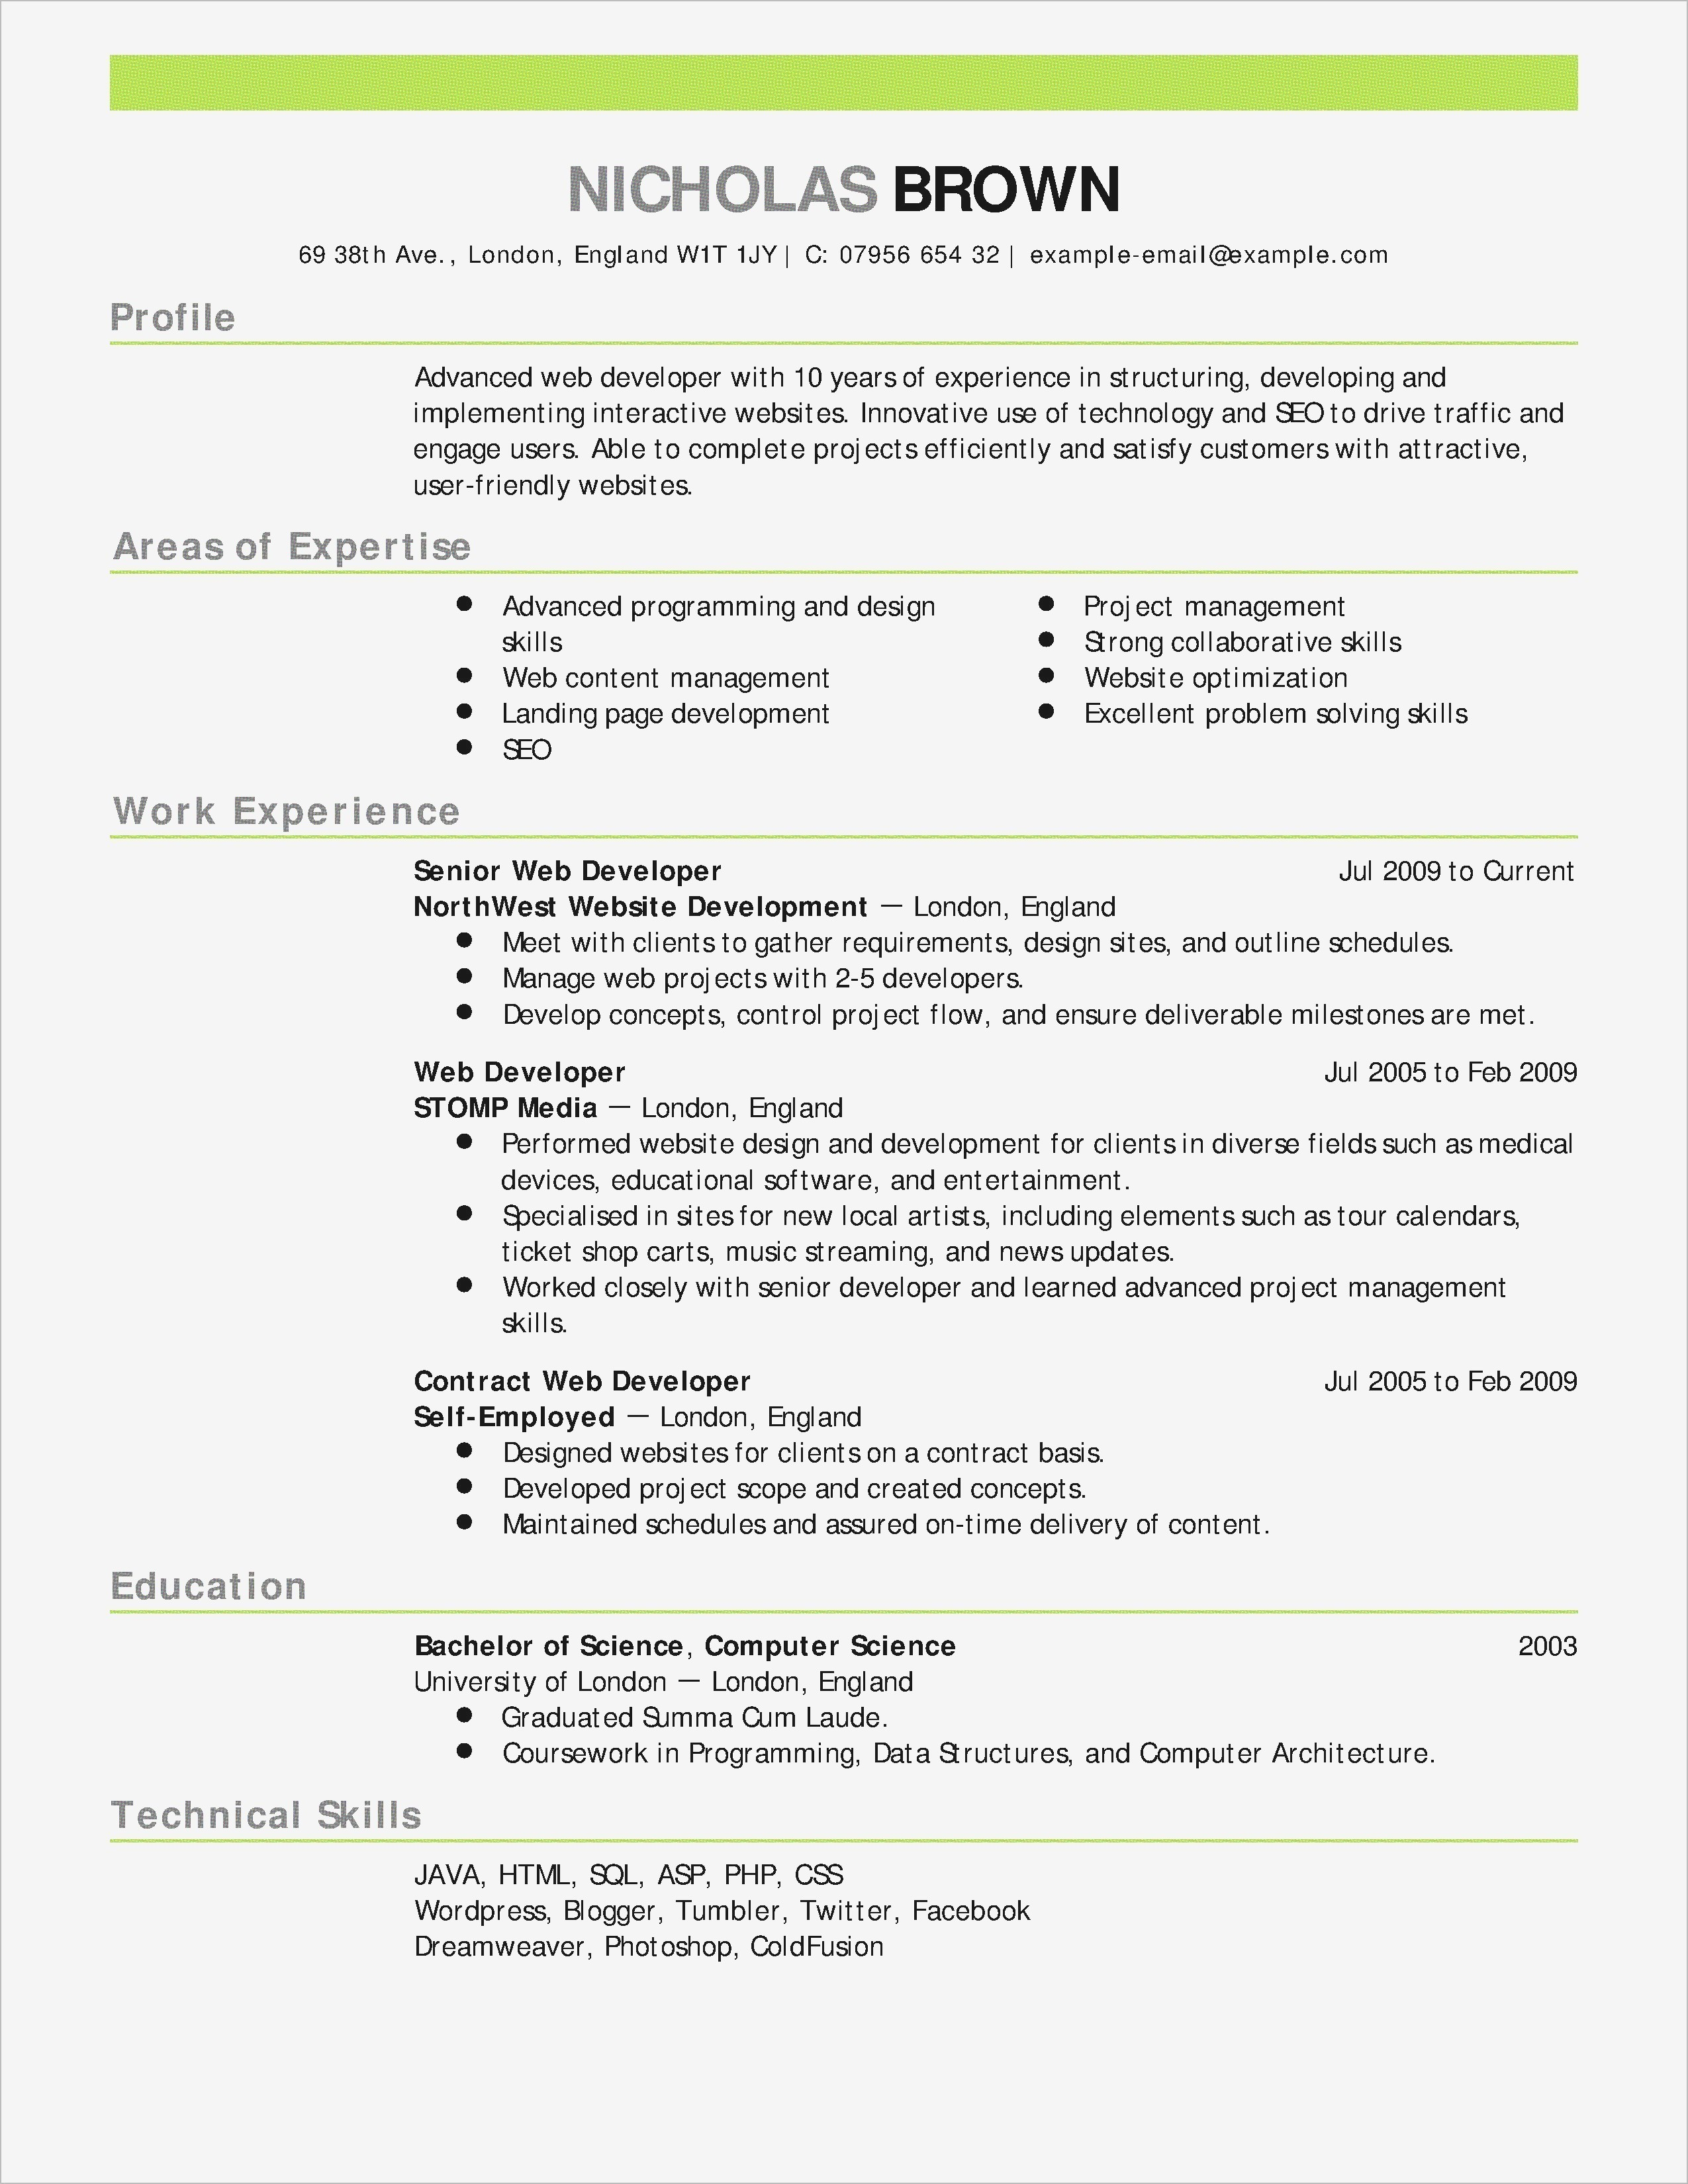 Tableau Developer Resumes - Good Words to Use A Resume